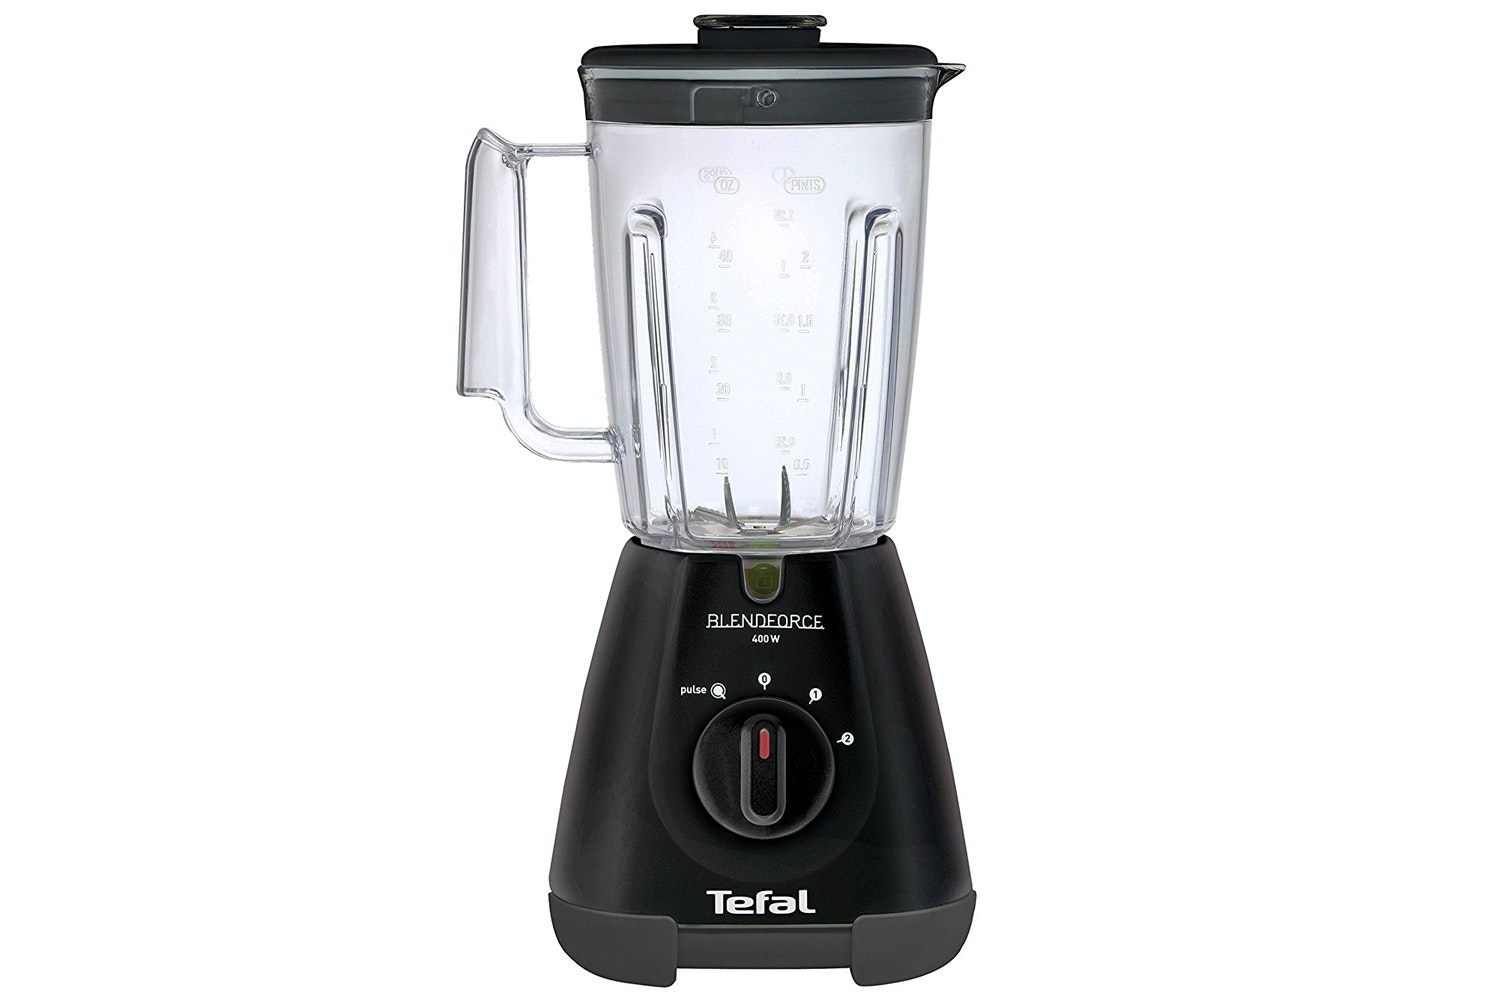 Tefal Blendforce Triplax Blender | BL305840